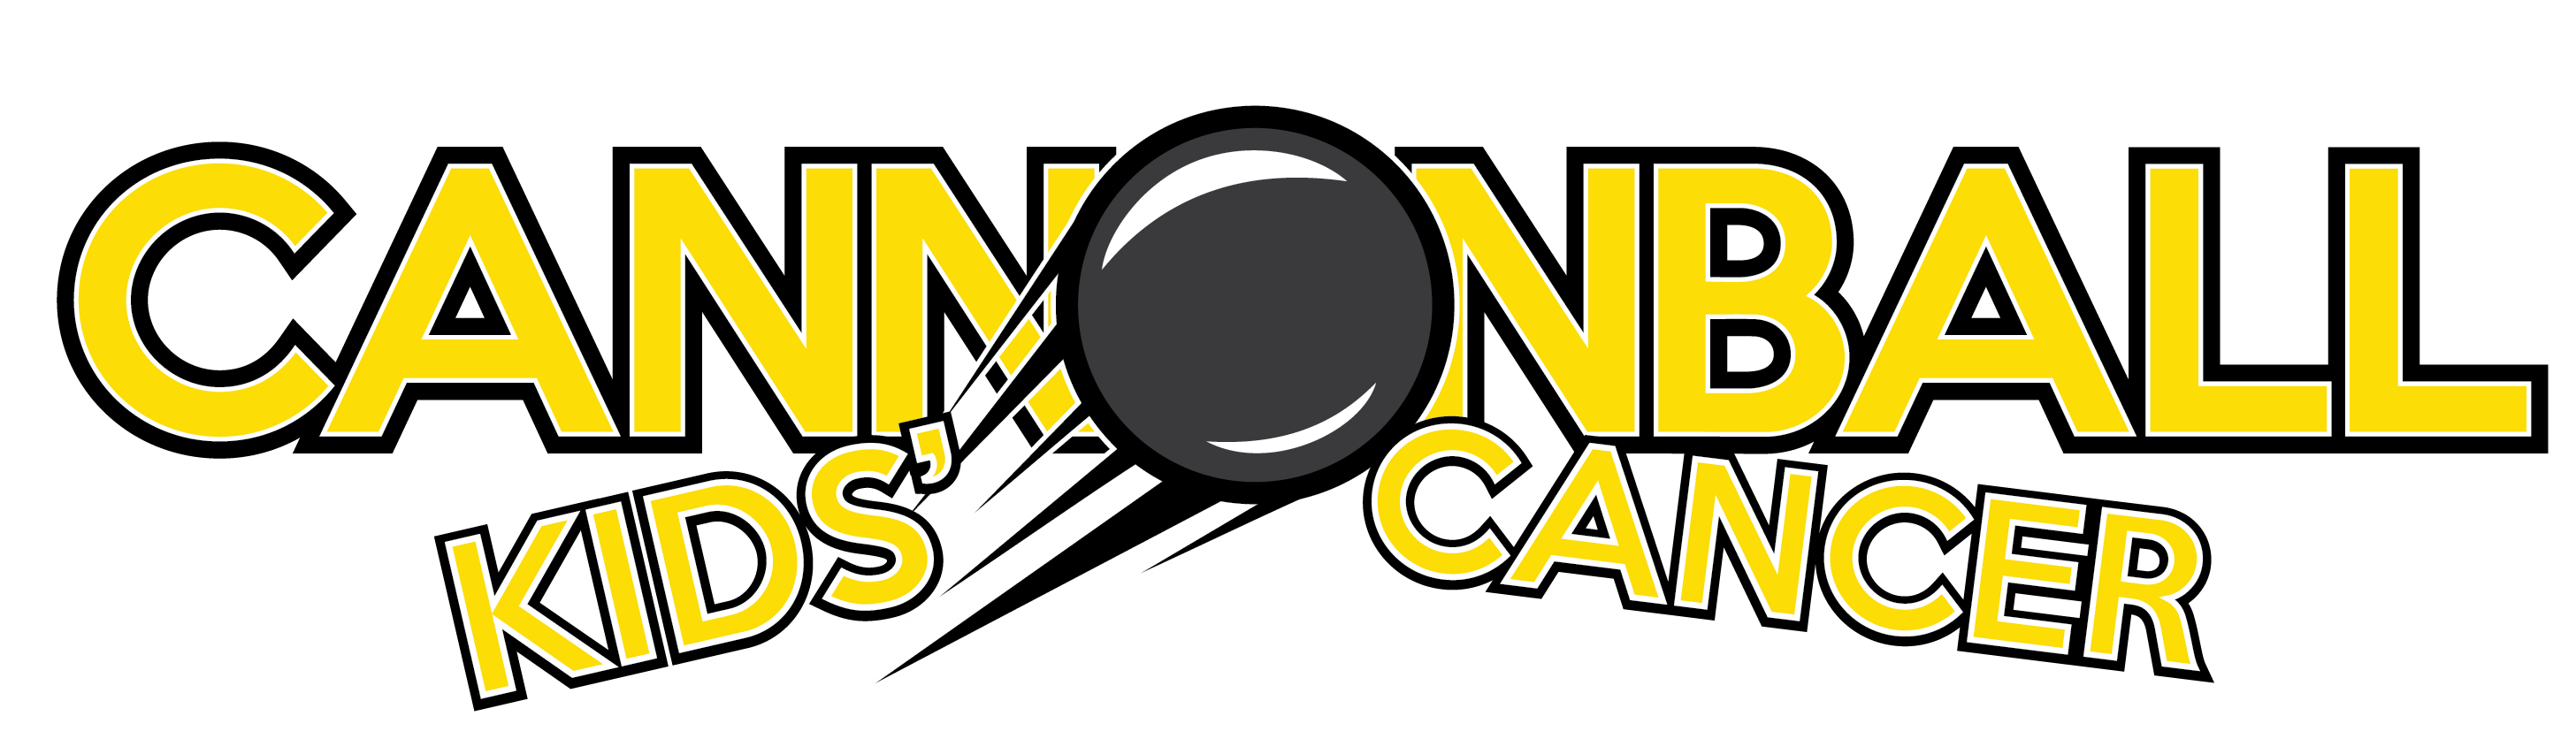 Cannonball Kid's Cancer Logo